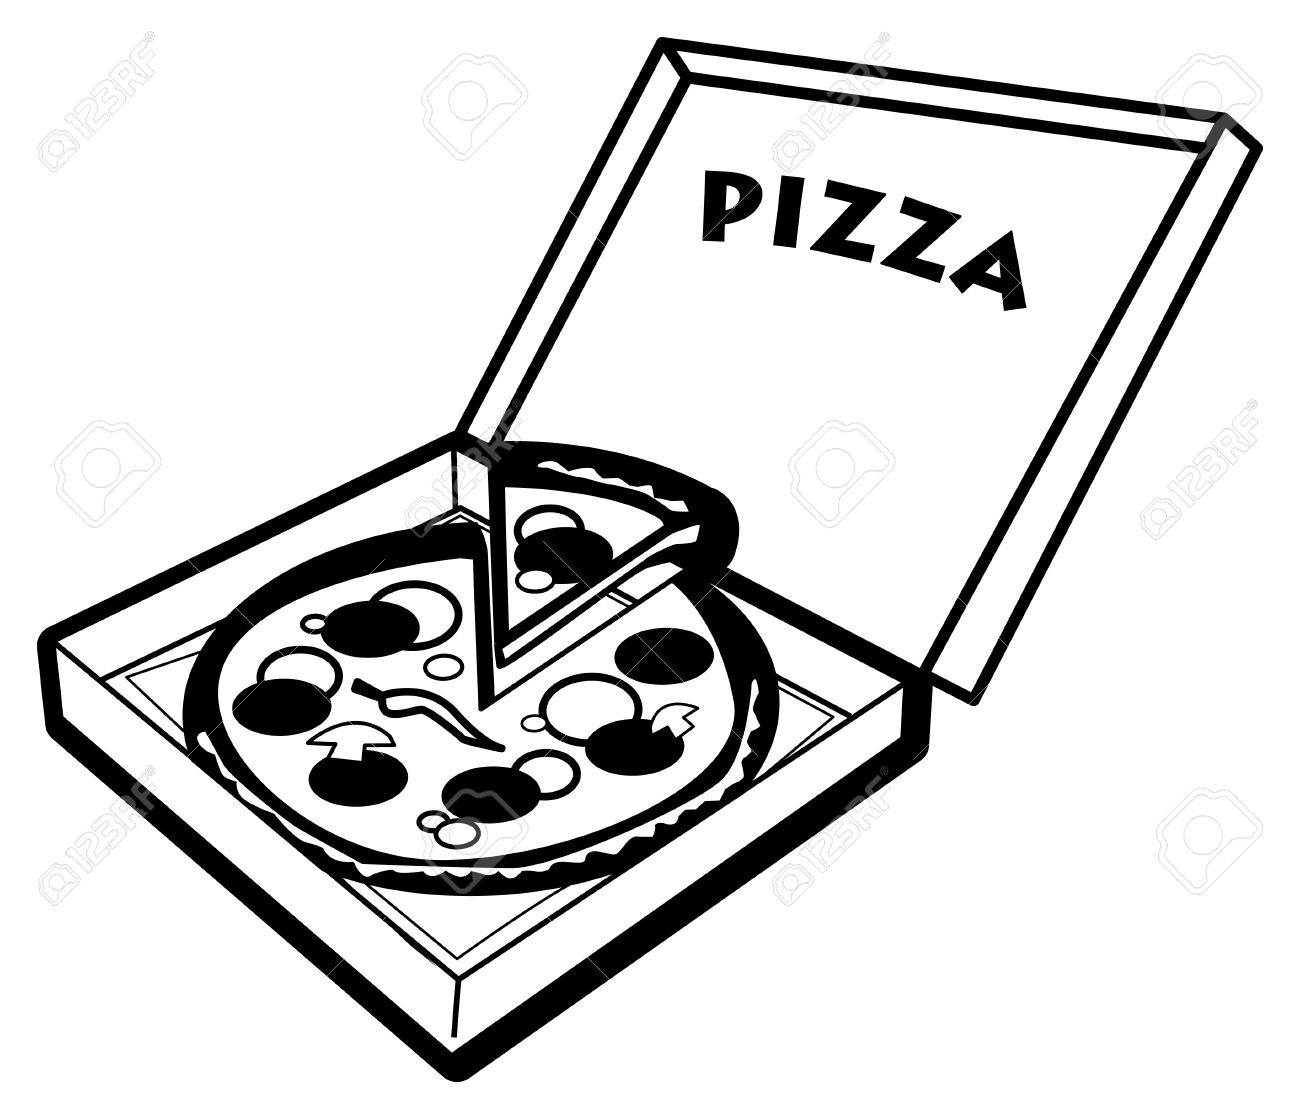 pizza in box royalty free cliparts vectors and stock illustration rh 123rf com pizza box clipart free